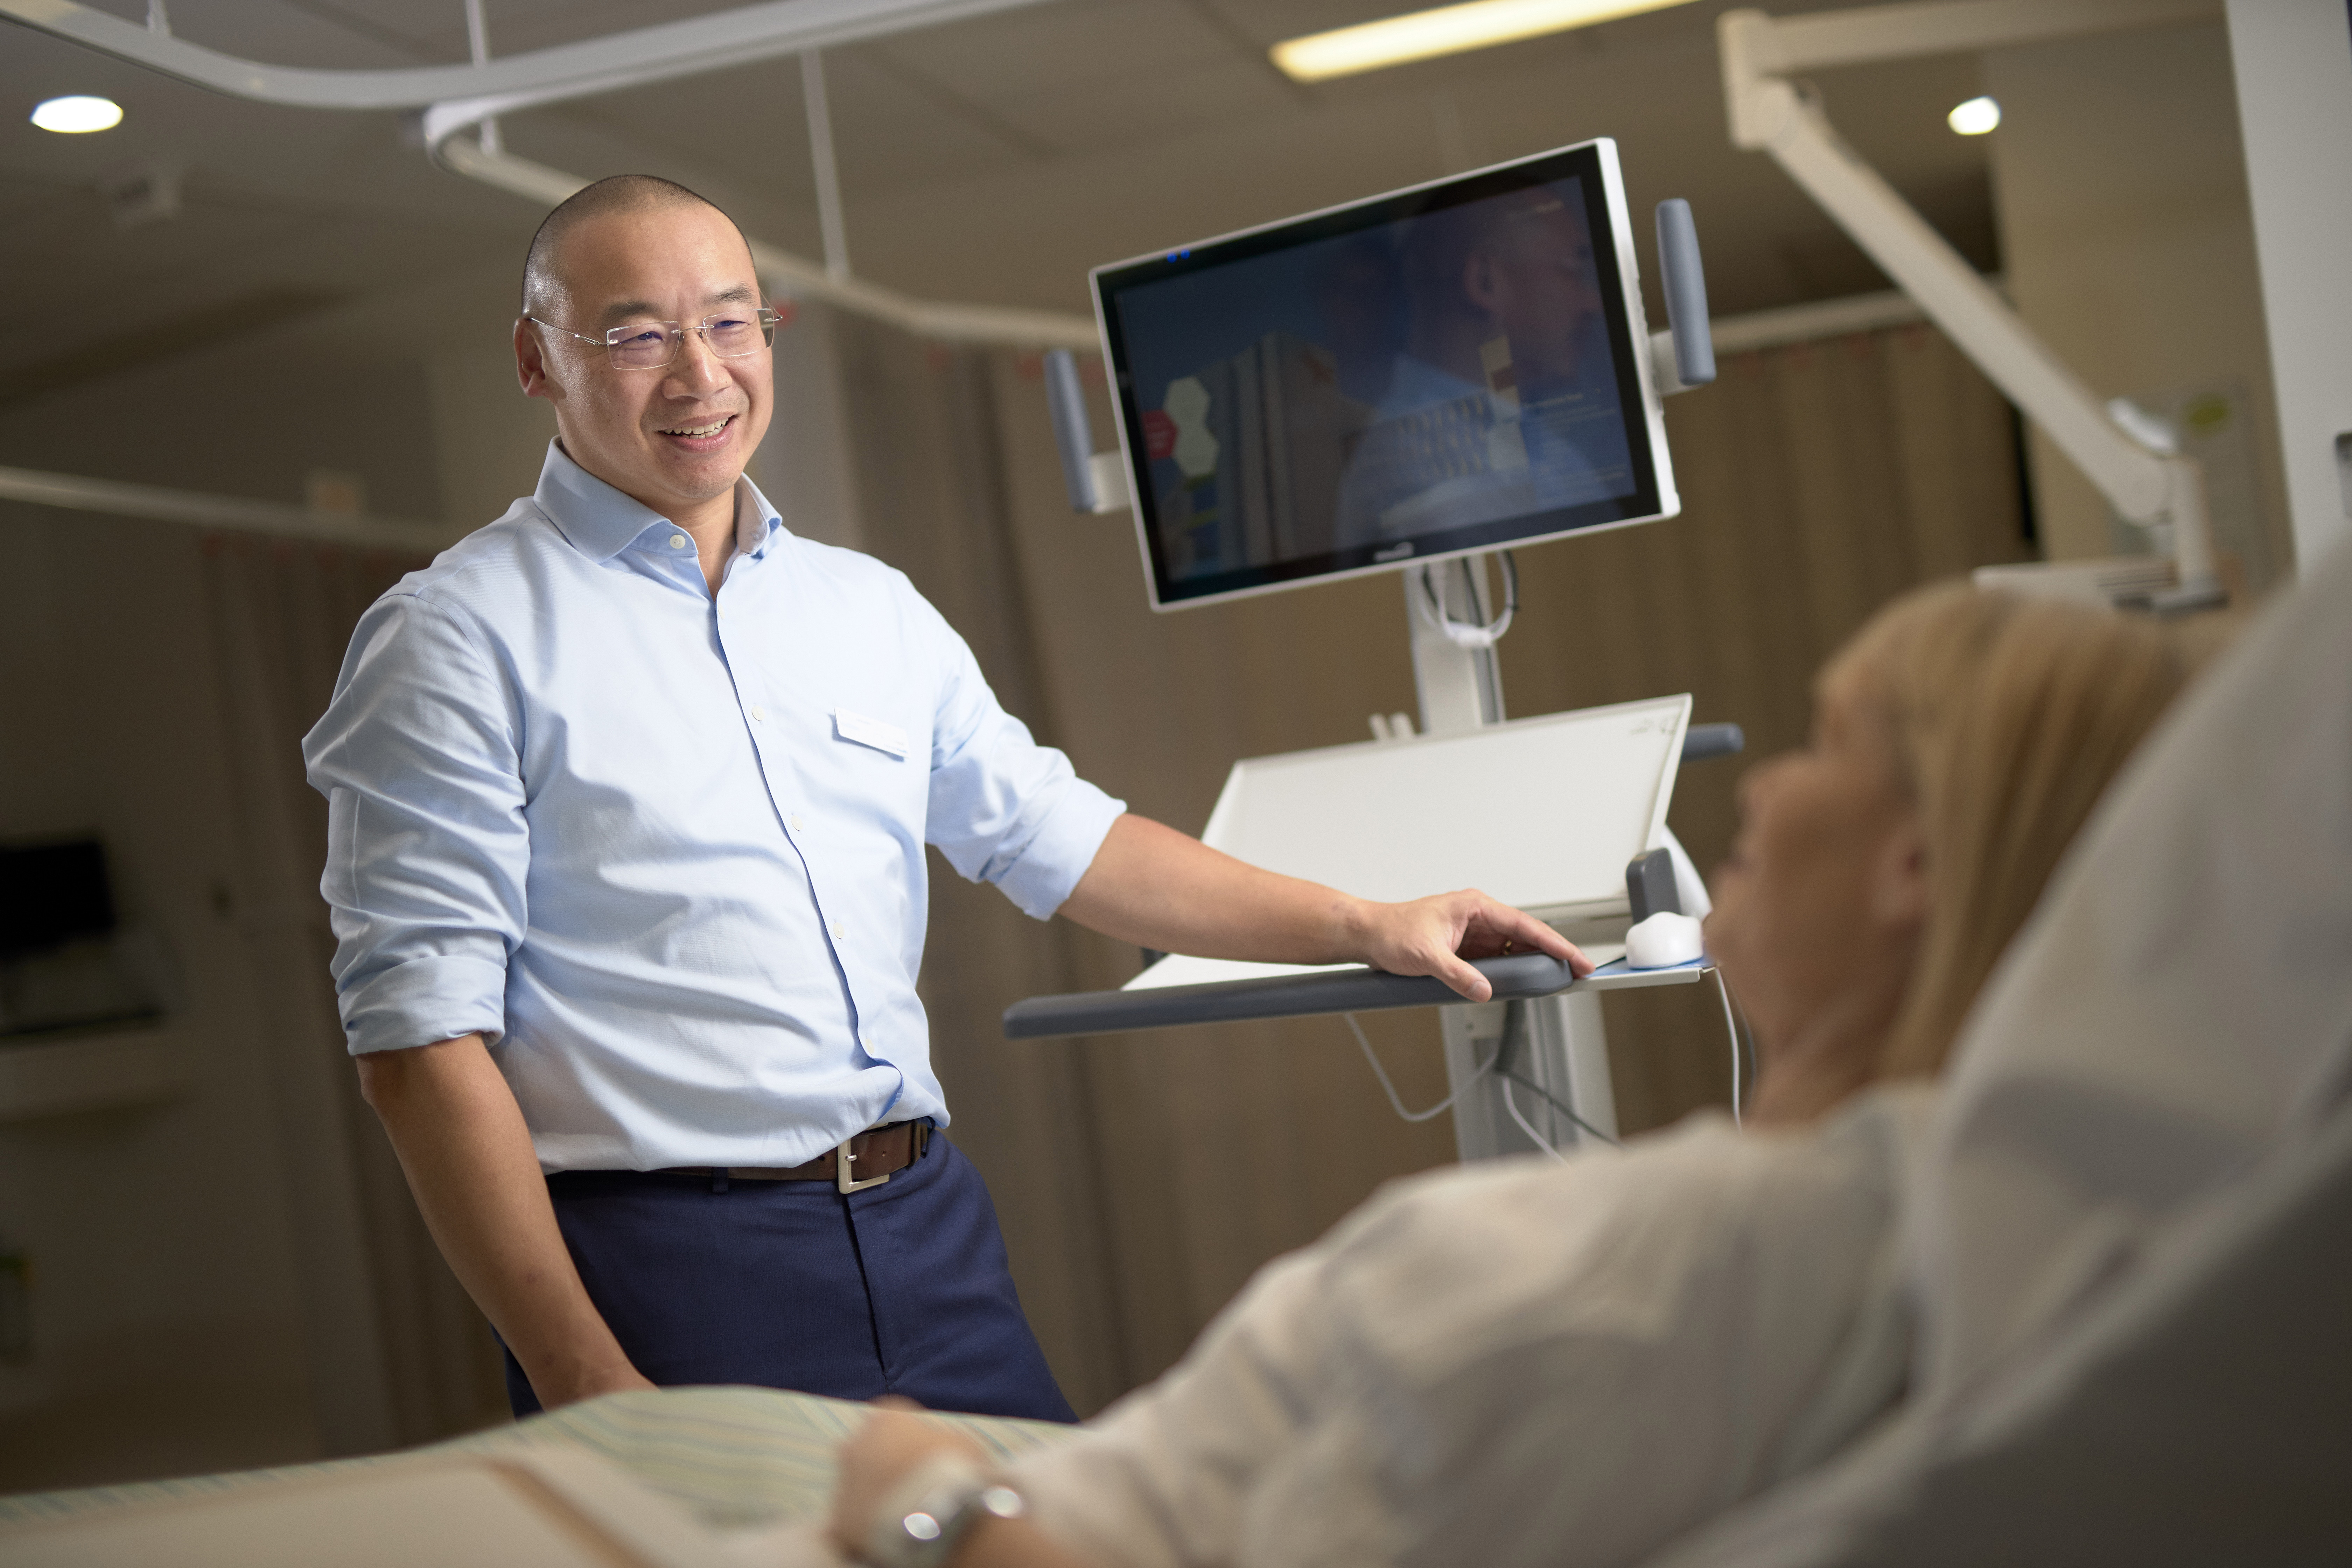 Doctor engages with patient while using slimline WOW